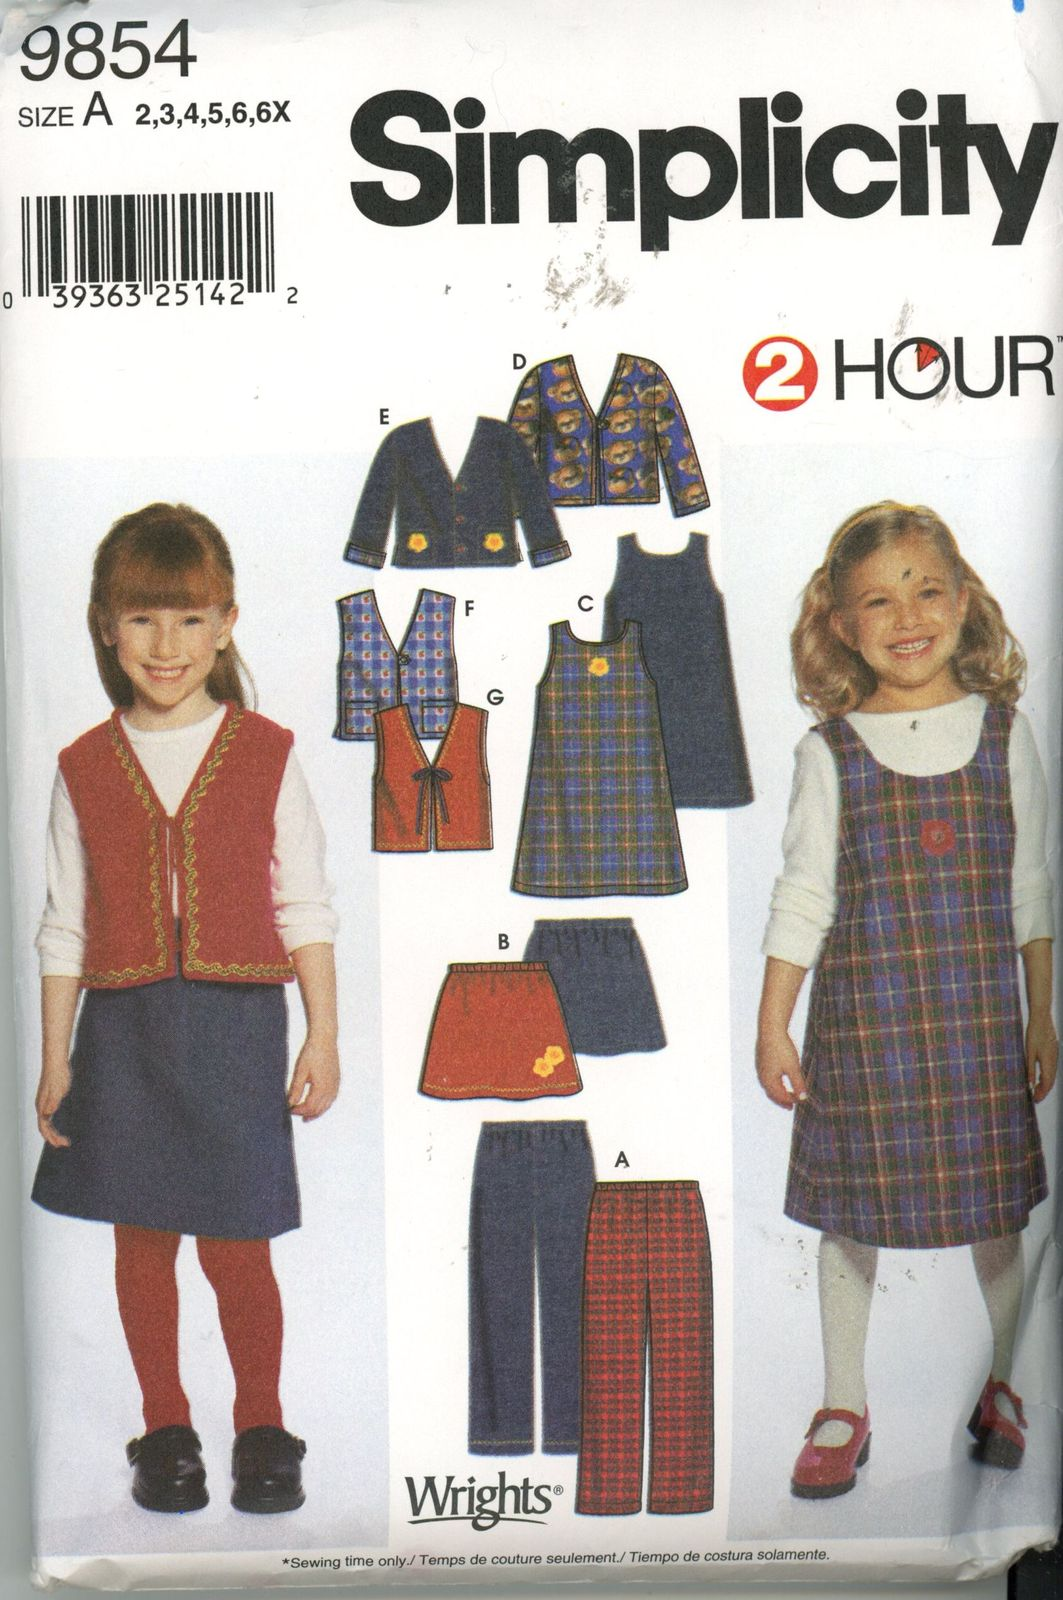 Primary image for Simplicity 9854 Girls Pants, Shirt, Jumper lined or unlined Jacket or Vest New